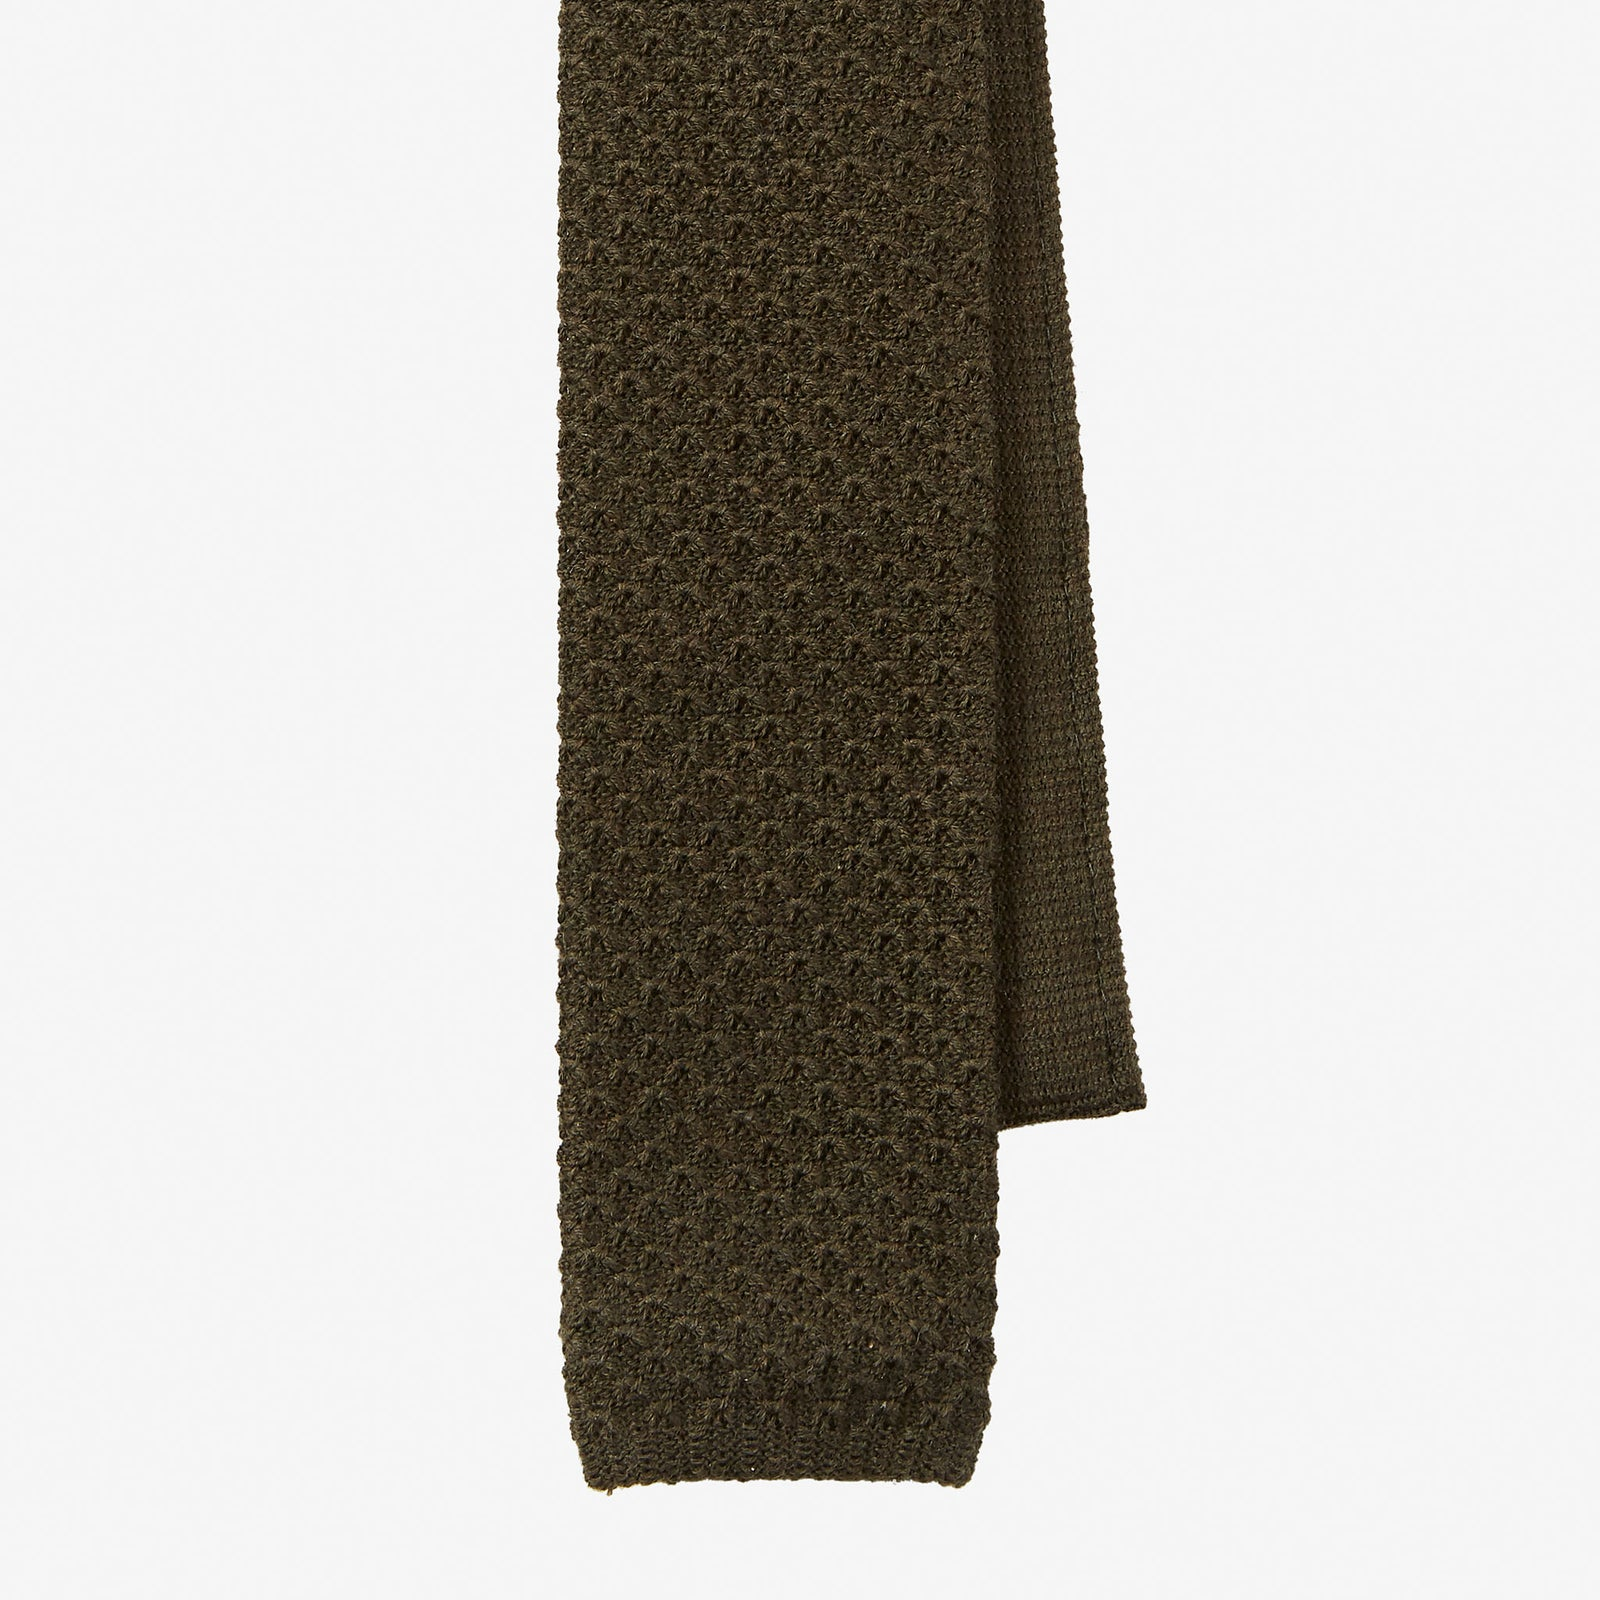 Knit Tie Wool Green